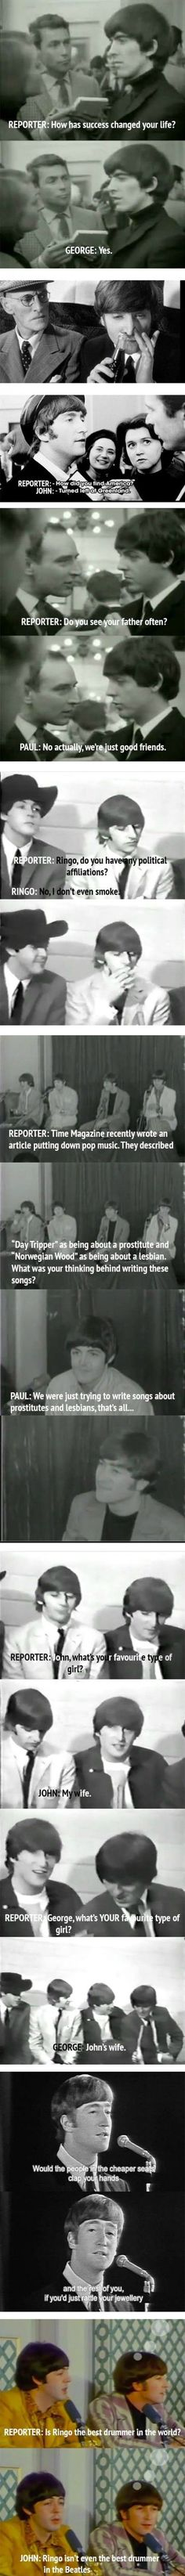 What happened when you tried to ask a serious question to The Beatles…these are HILARIOUUUUS